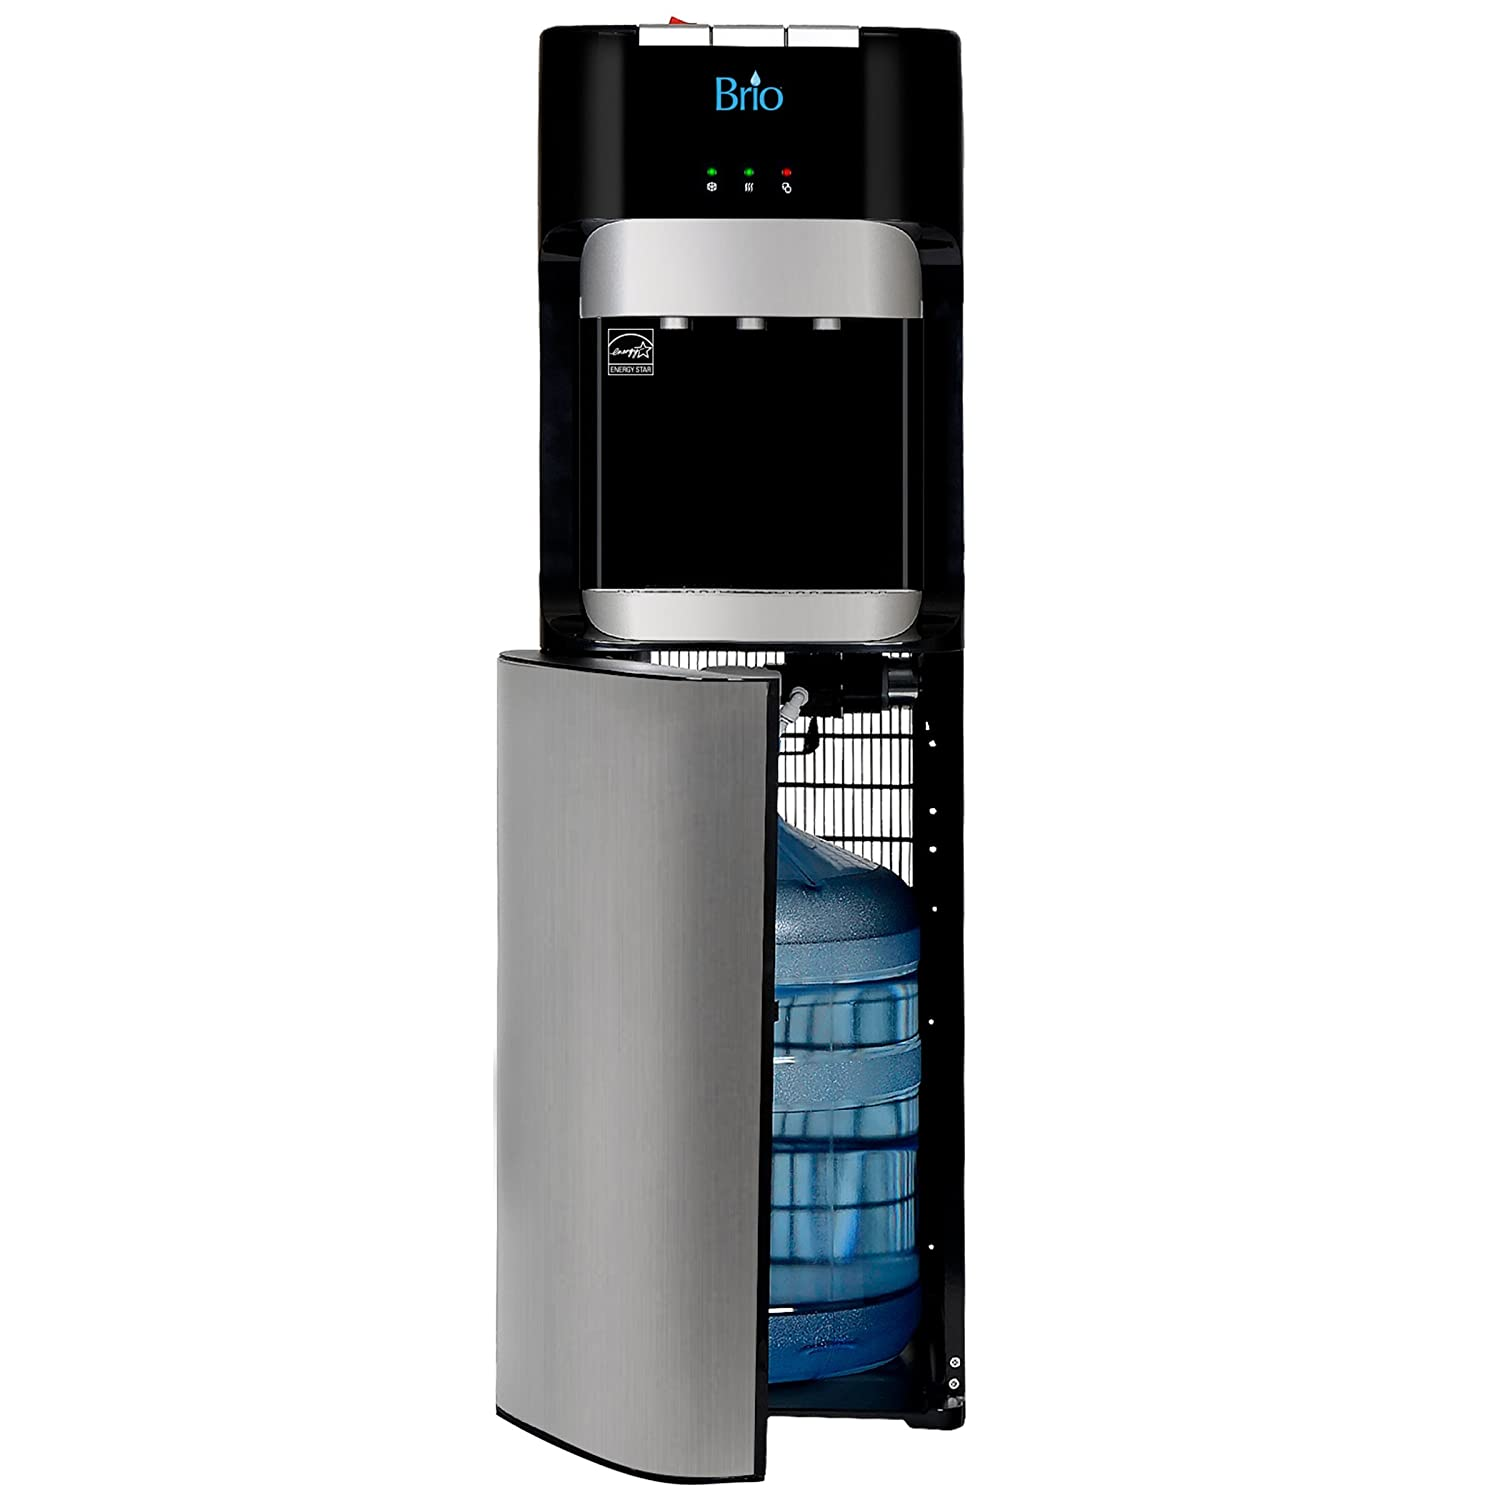 Brio Essential Series Water Cooler Dispenser Black Friday Deals